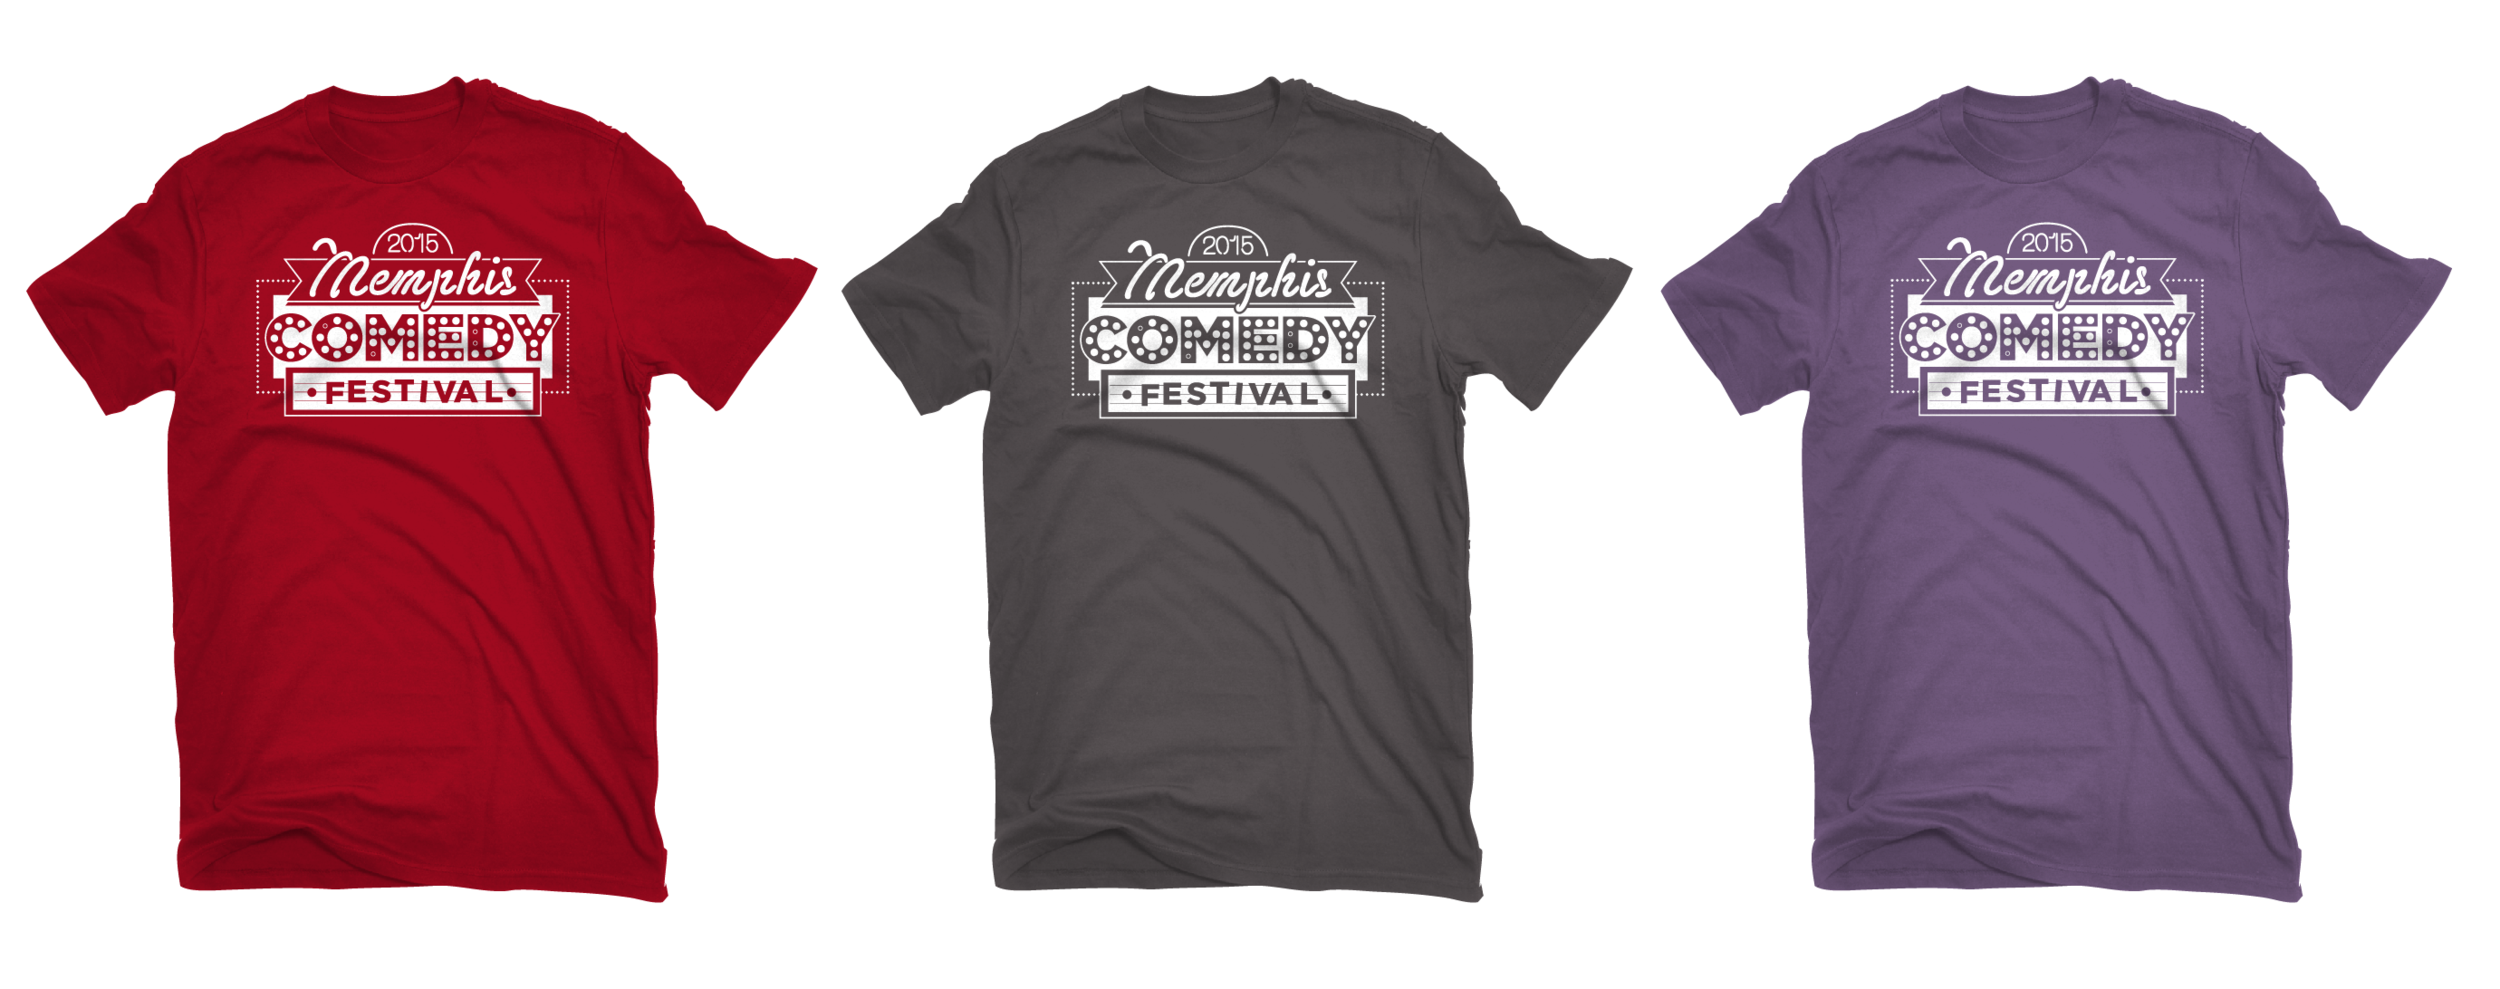 shirts in Antique Cherry, Charcoal Grey and Heather Purple